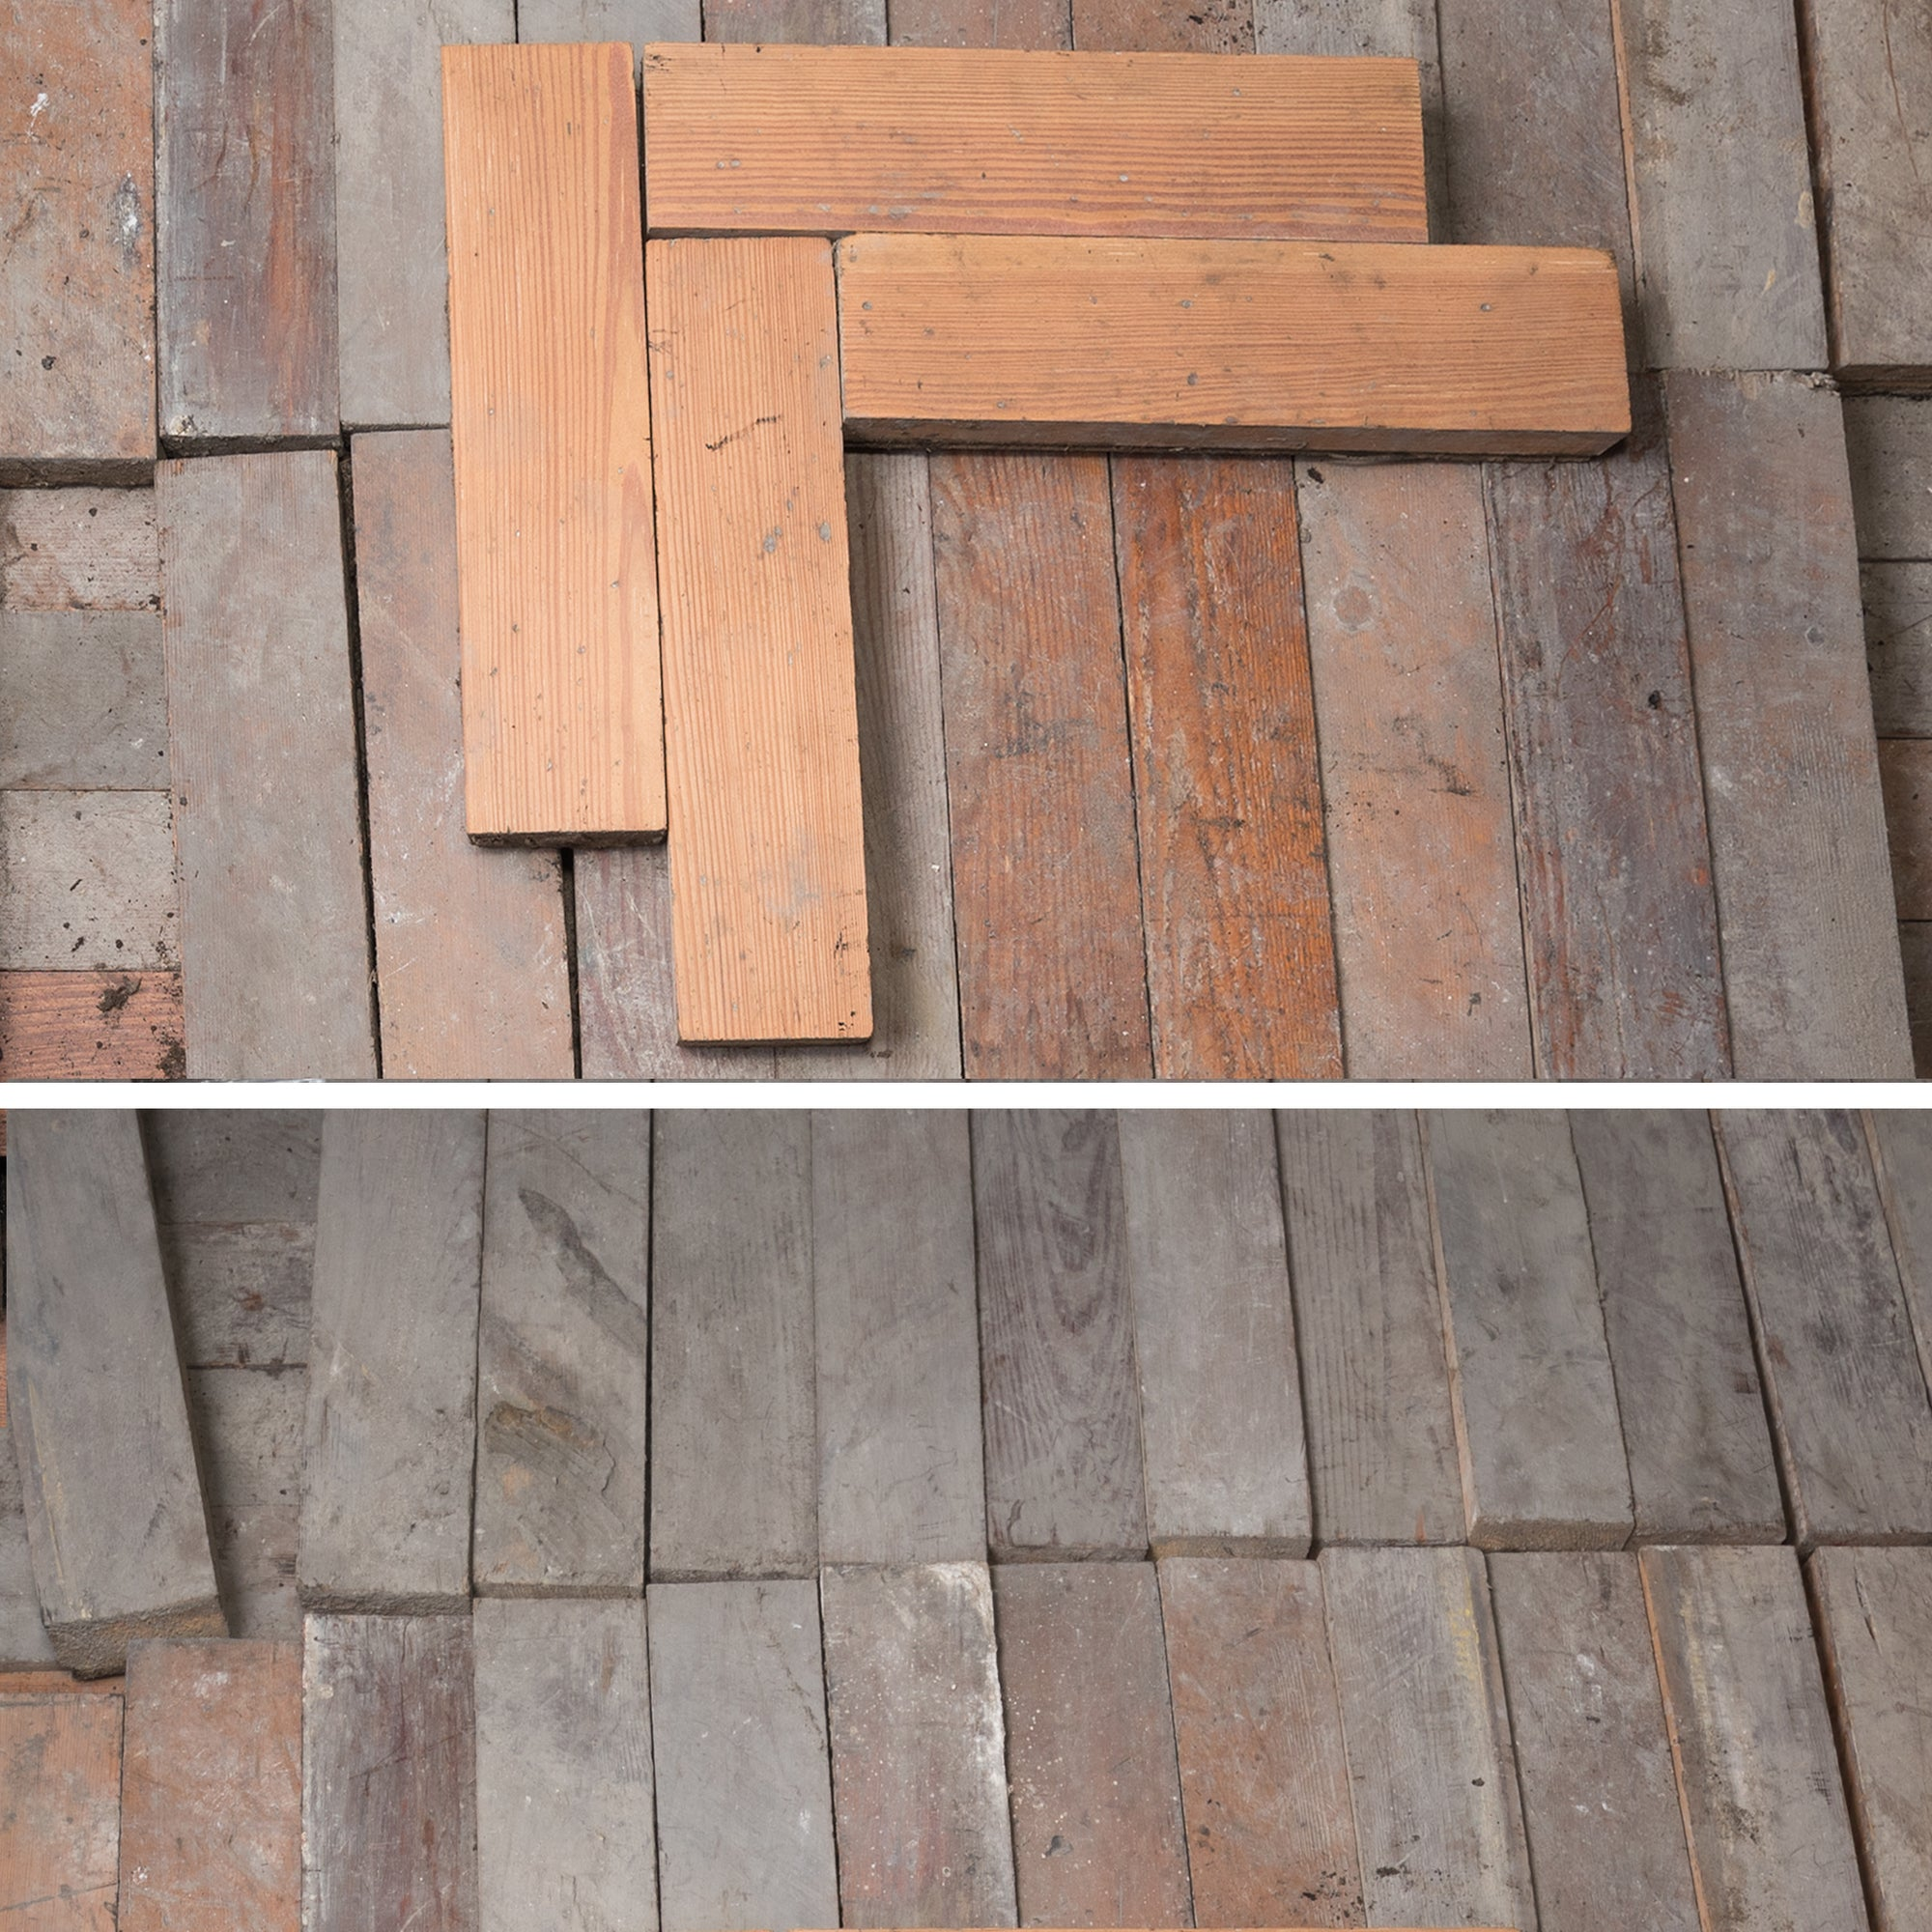 Antique Reclaimed Pine Parquet Flooring 39m² Available